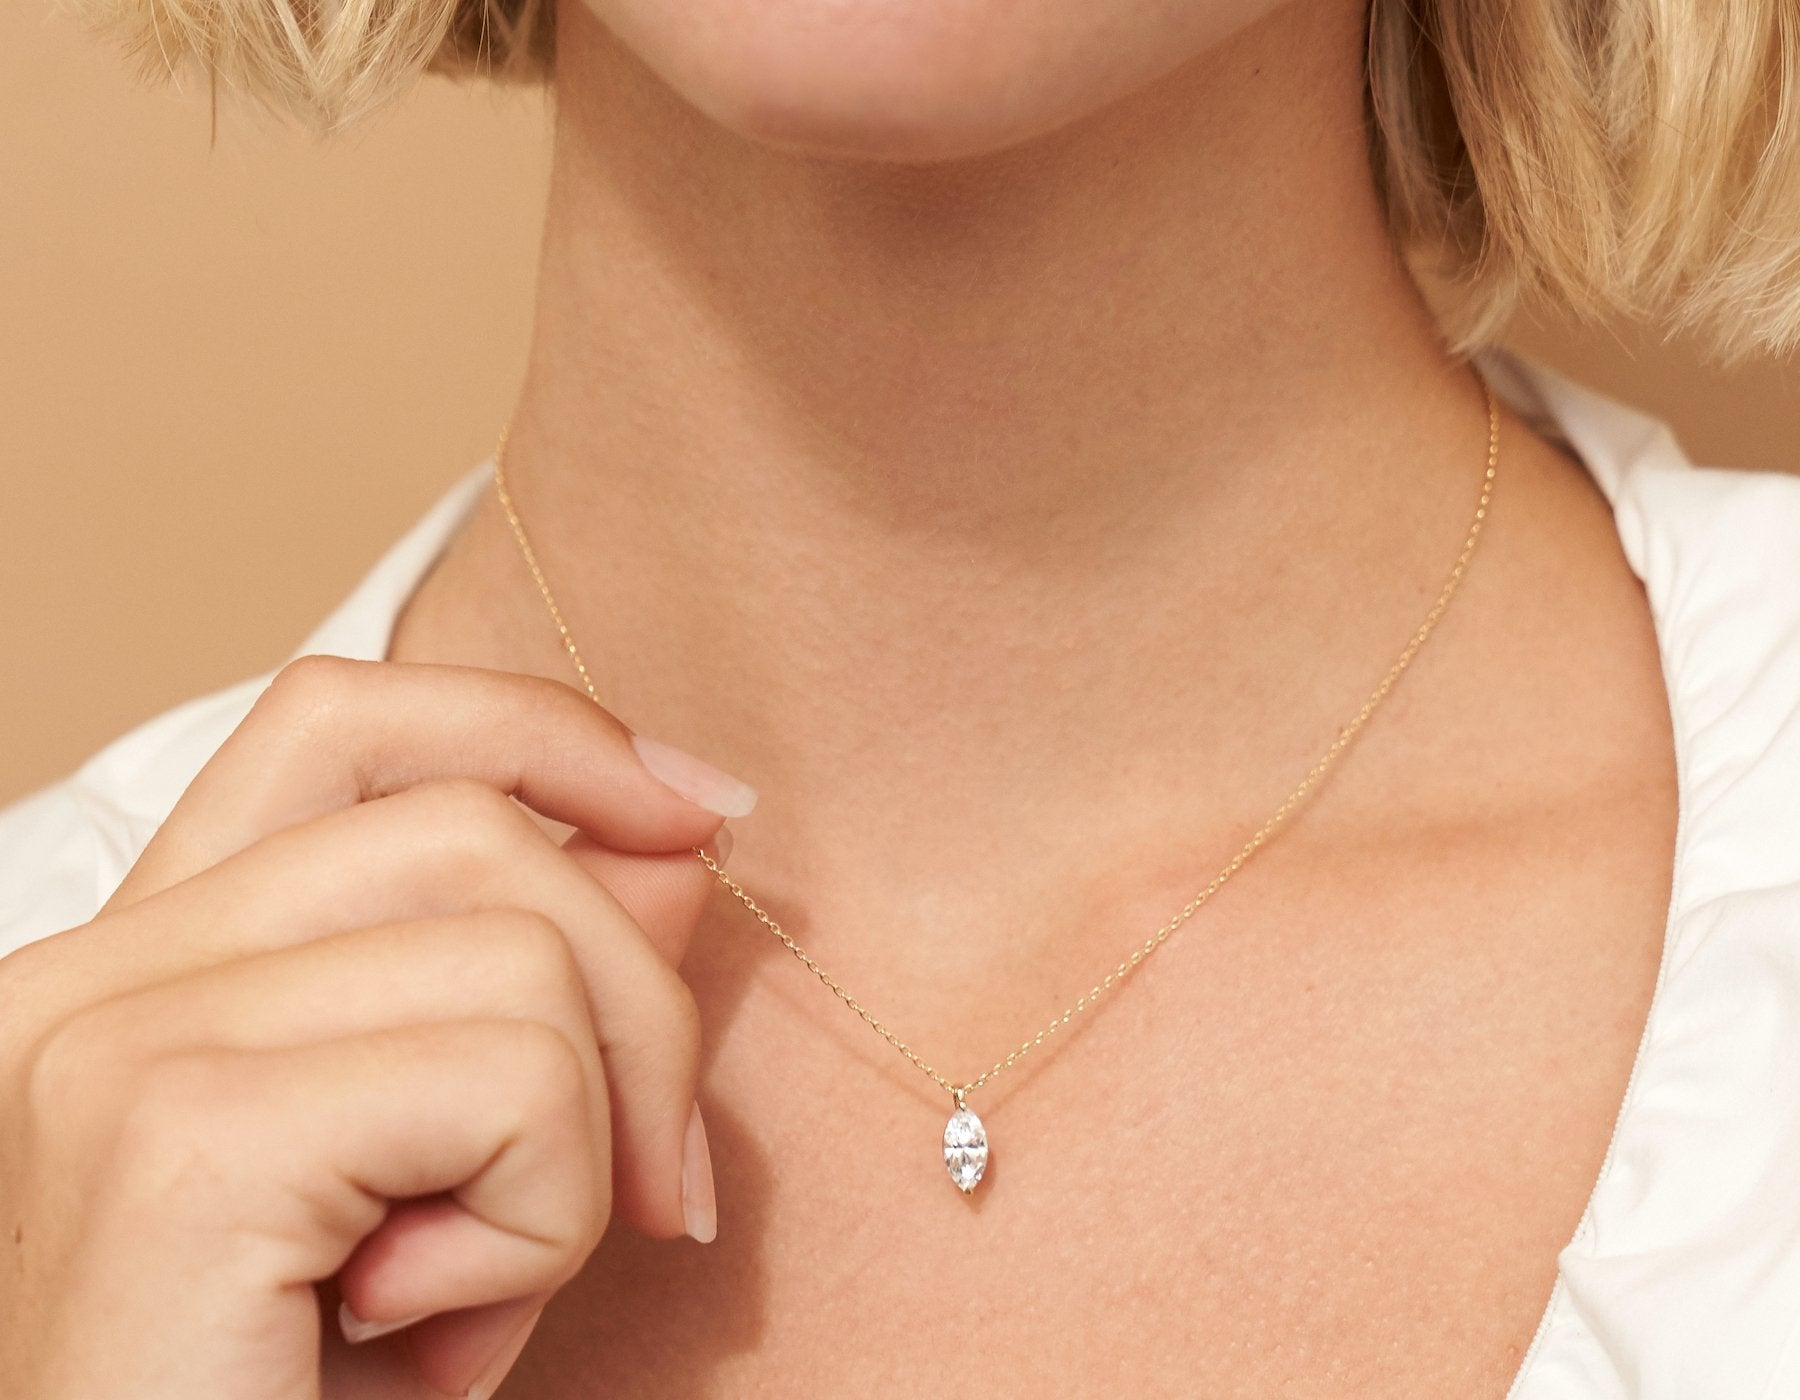 Model wearing Vrai 14K solid gold solitaire marquise diamond pendant necklace 1ct minimalist delicate, 14K Rose Gold